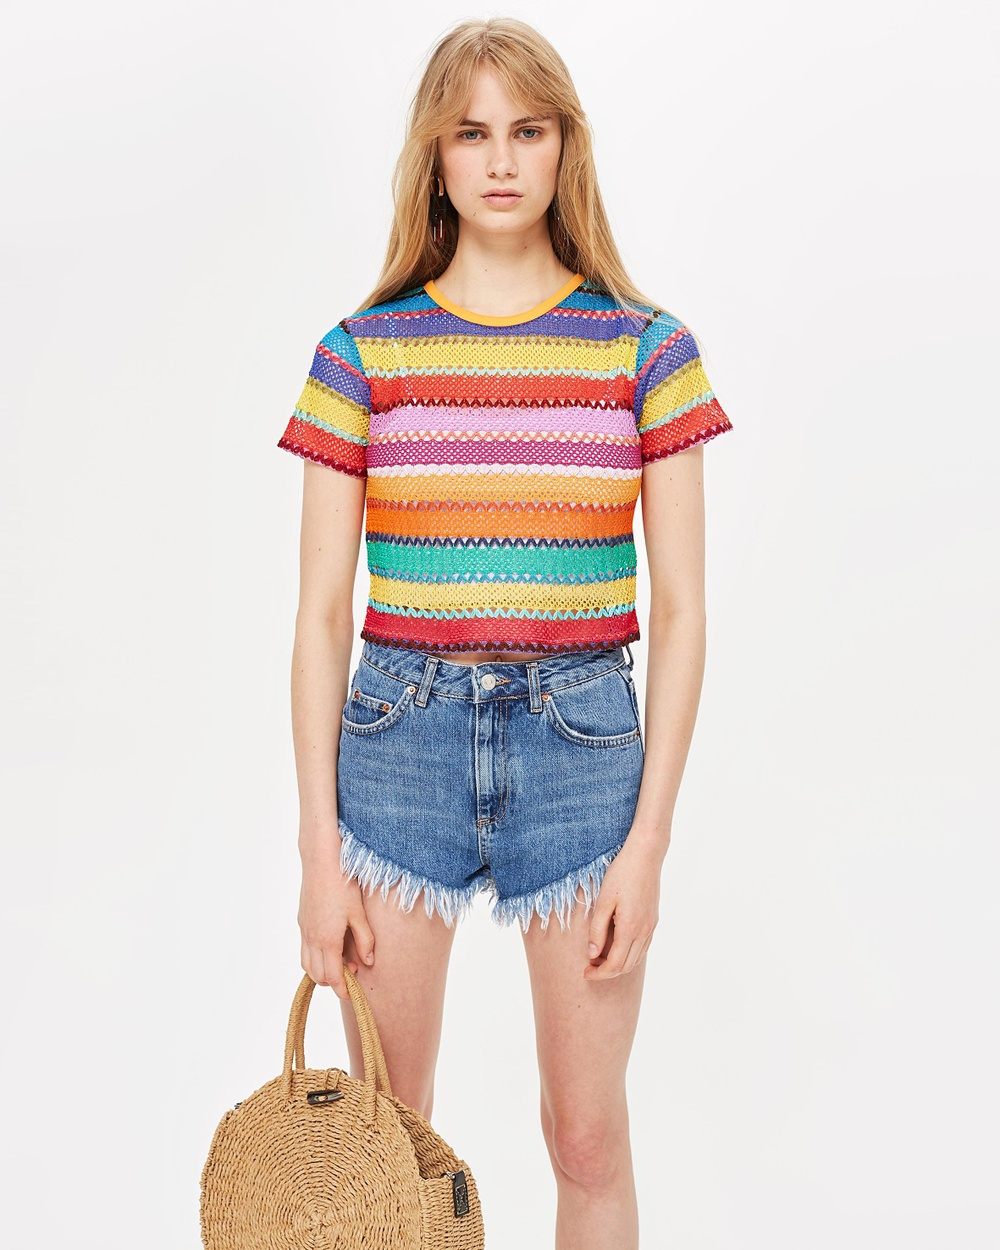 Photo of TOPSHOP TOPSHOP Bright Crochet T Shirt Cropped tops Multi Bright Crochet T-Shirt - High Street icon TOPSHOP is a leader in delivering international trends with a design-led, accessible focus. Launched in 1964 as a purveyor of young British designers, the brand has evolved into a global fashion force and a champion of emerging talent. Today, TOPSHOP designs and creates extensive womenswear collections that cover everything from well-made wardrobe basics to co